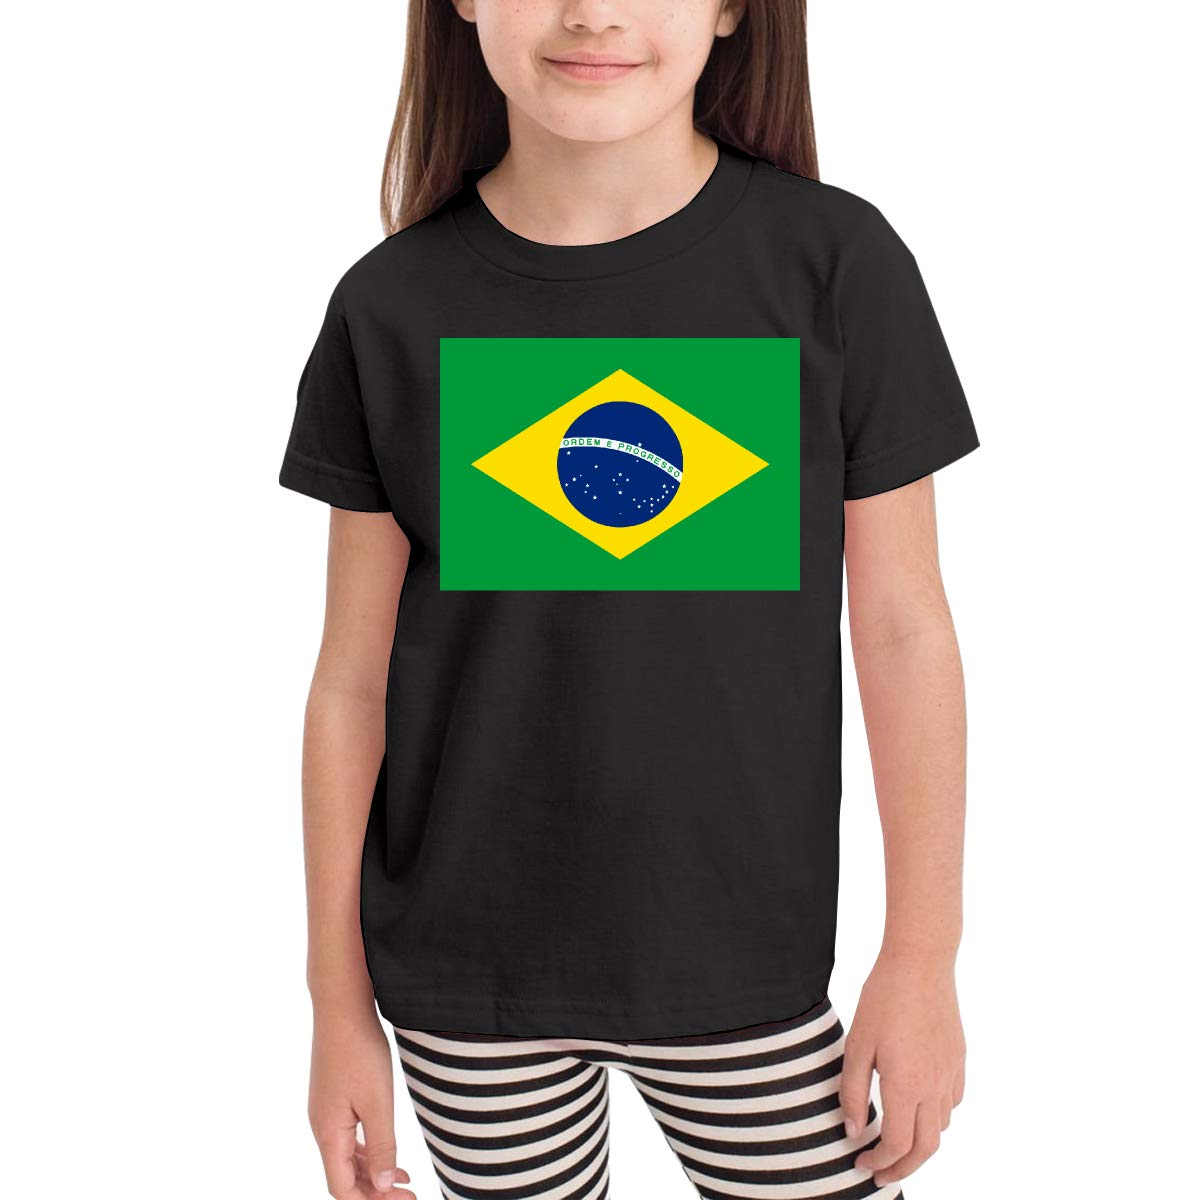 2-6T Kawaii Blouse Clothes Vy91Lk-8 Short-Sleeve Flag of Brazil T-Shirts for Kids